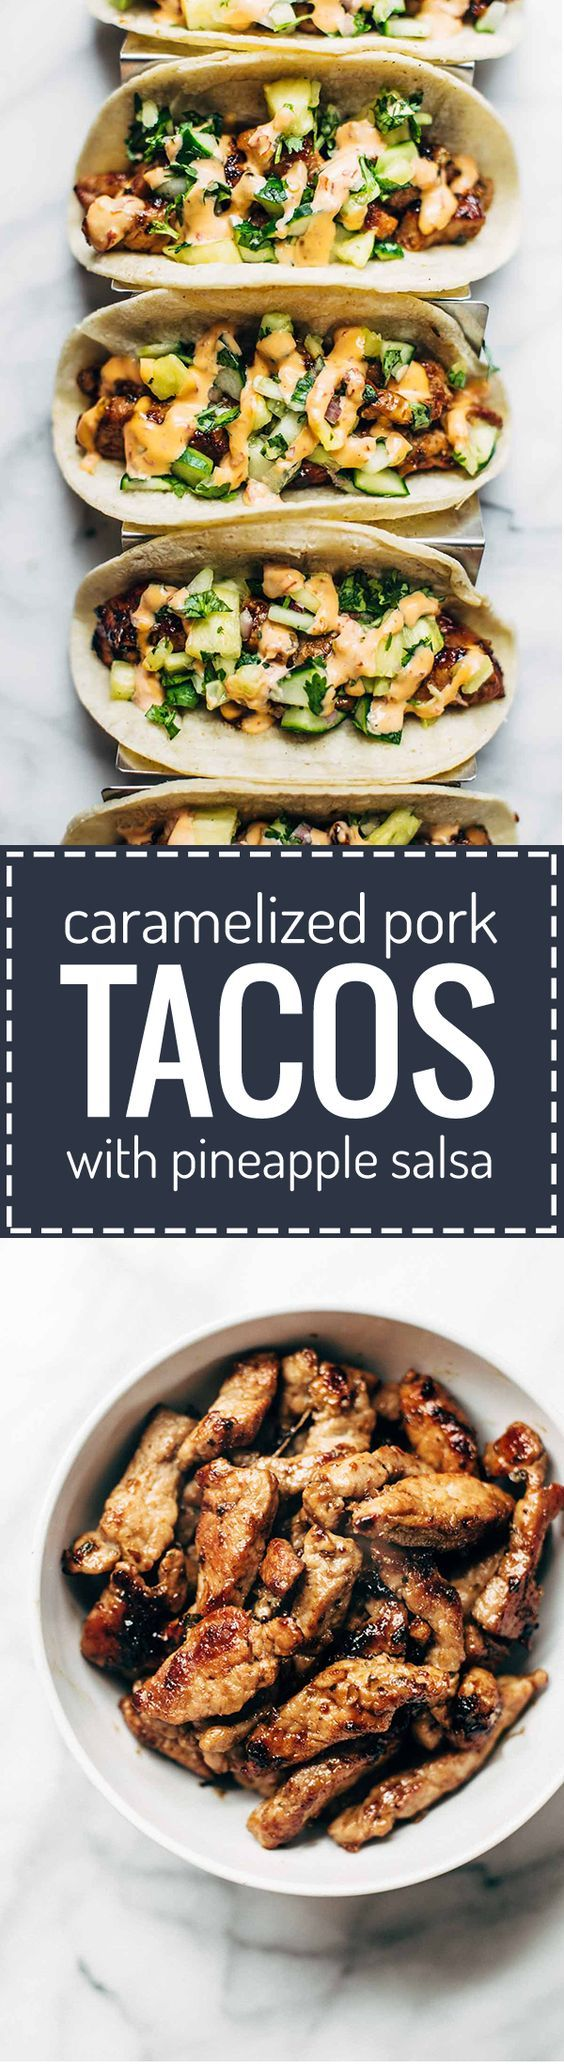 Caramelized Pork Tacos with Pineapple Salsa - topped with sriracha mayo, obviously. Quick and easy to make - LOVE this recipe! | pinchofyum.com